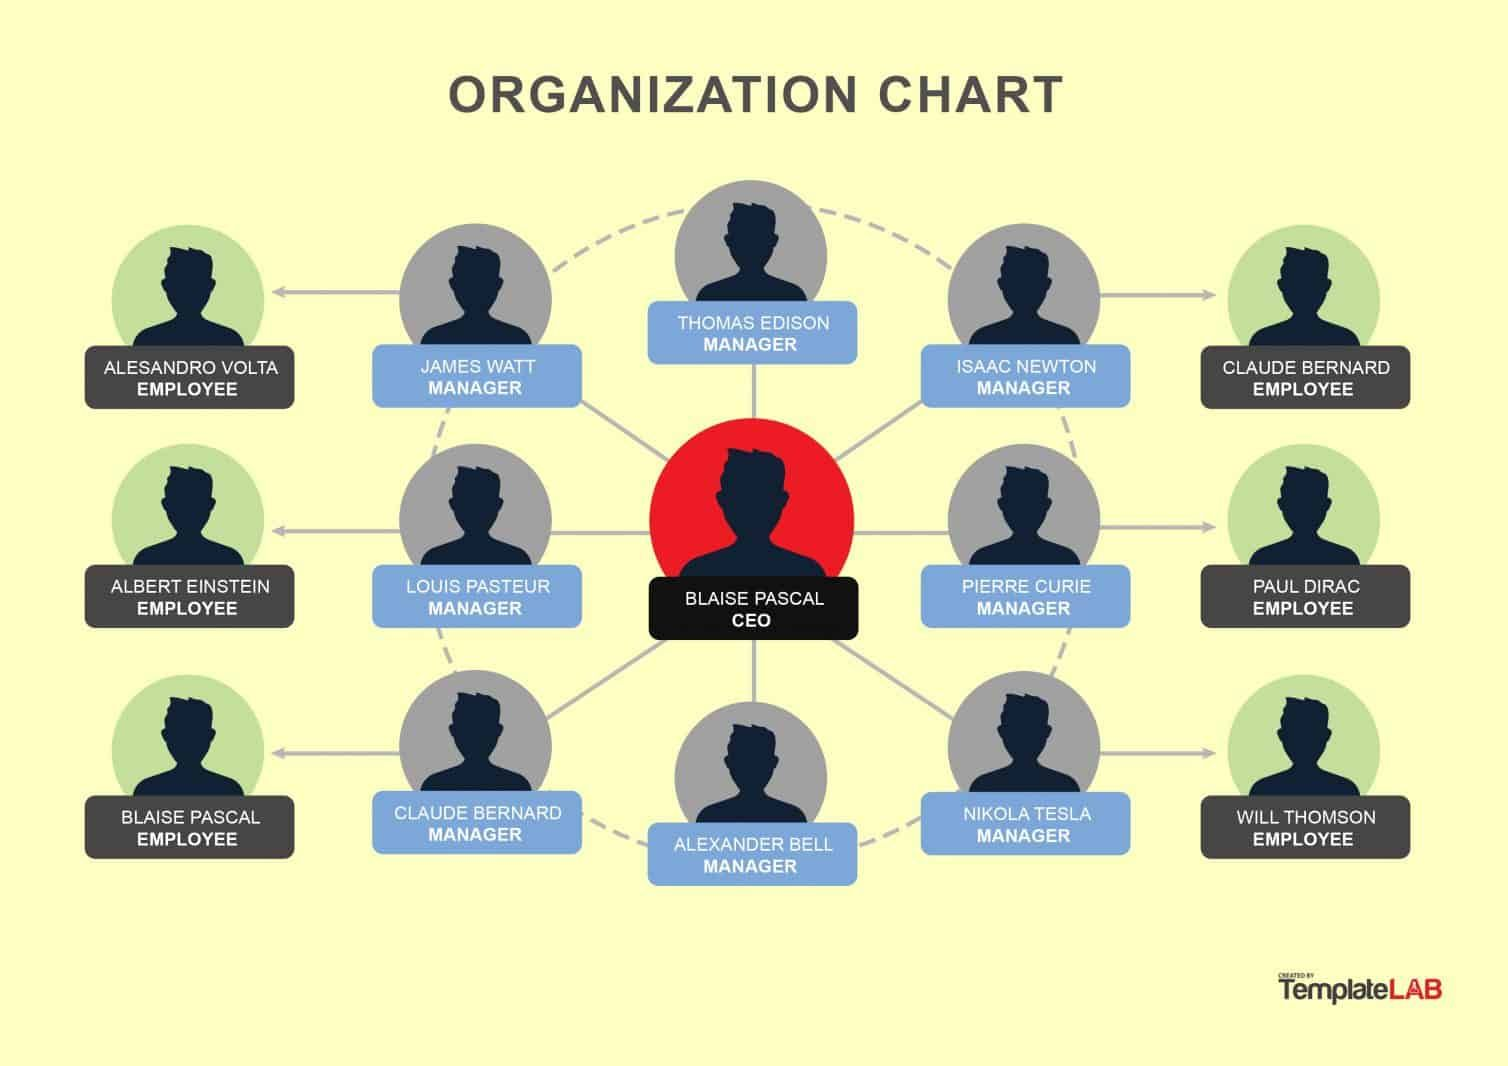 40 Organizational Chart Templates Word, Excel, Powerpoint ...